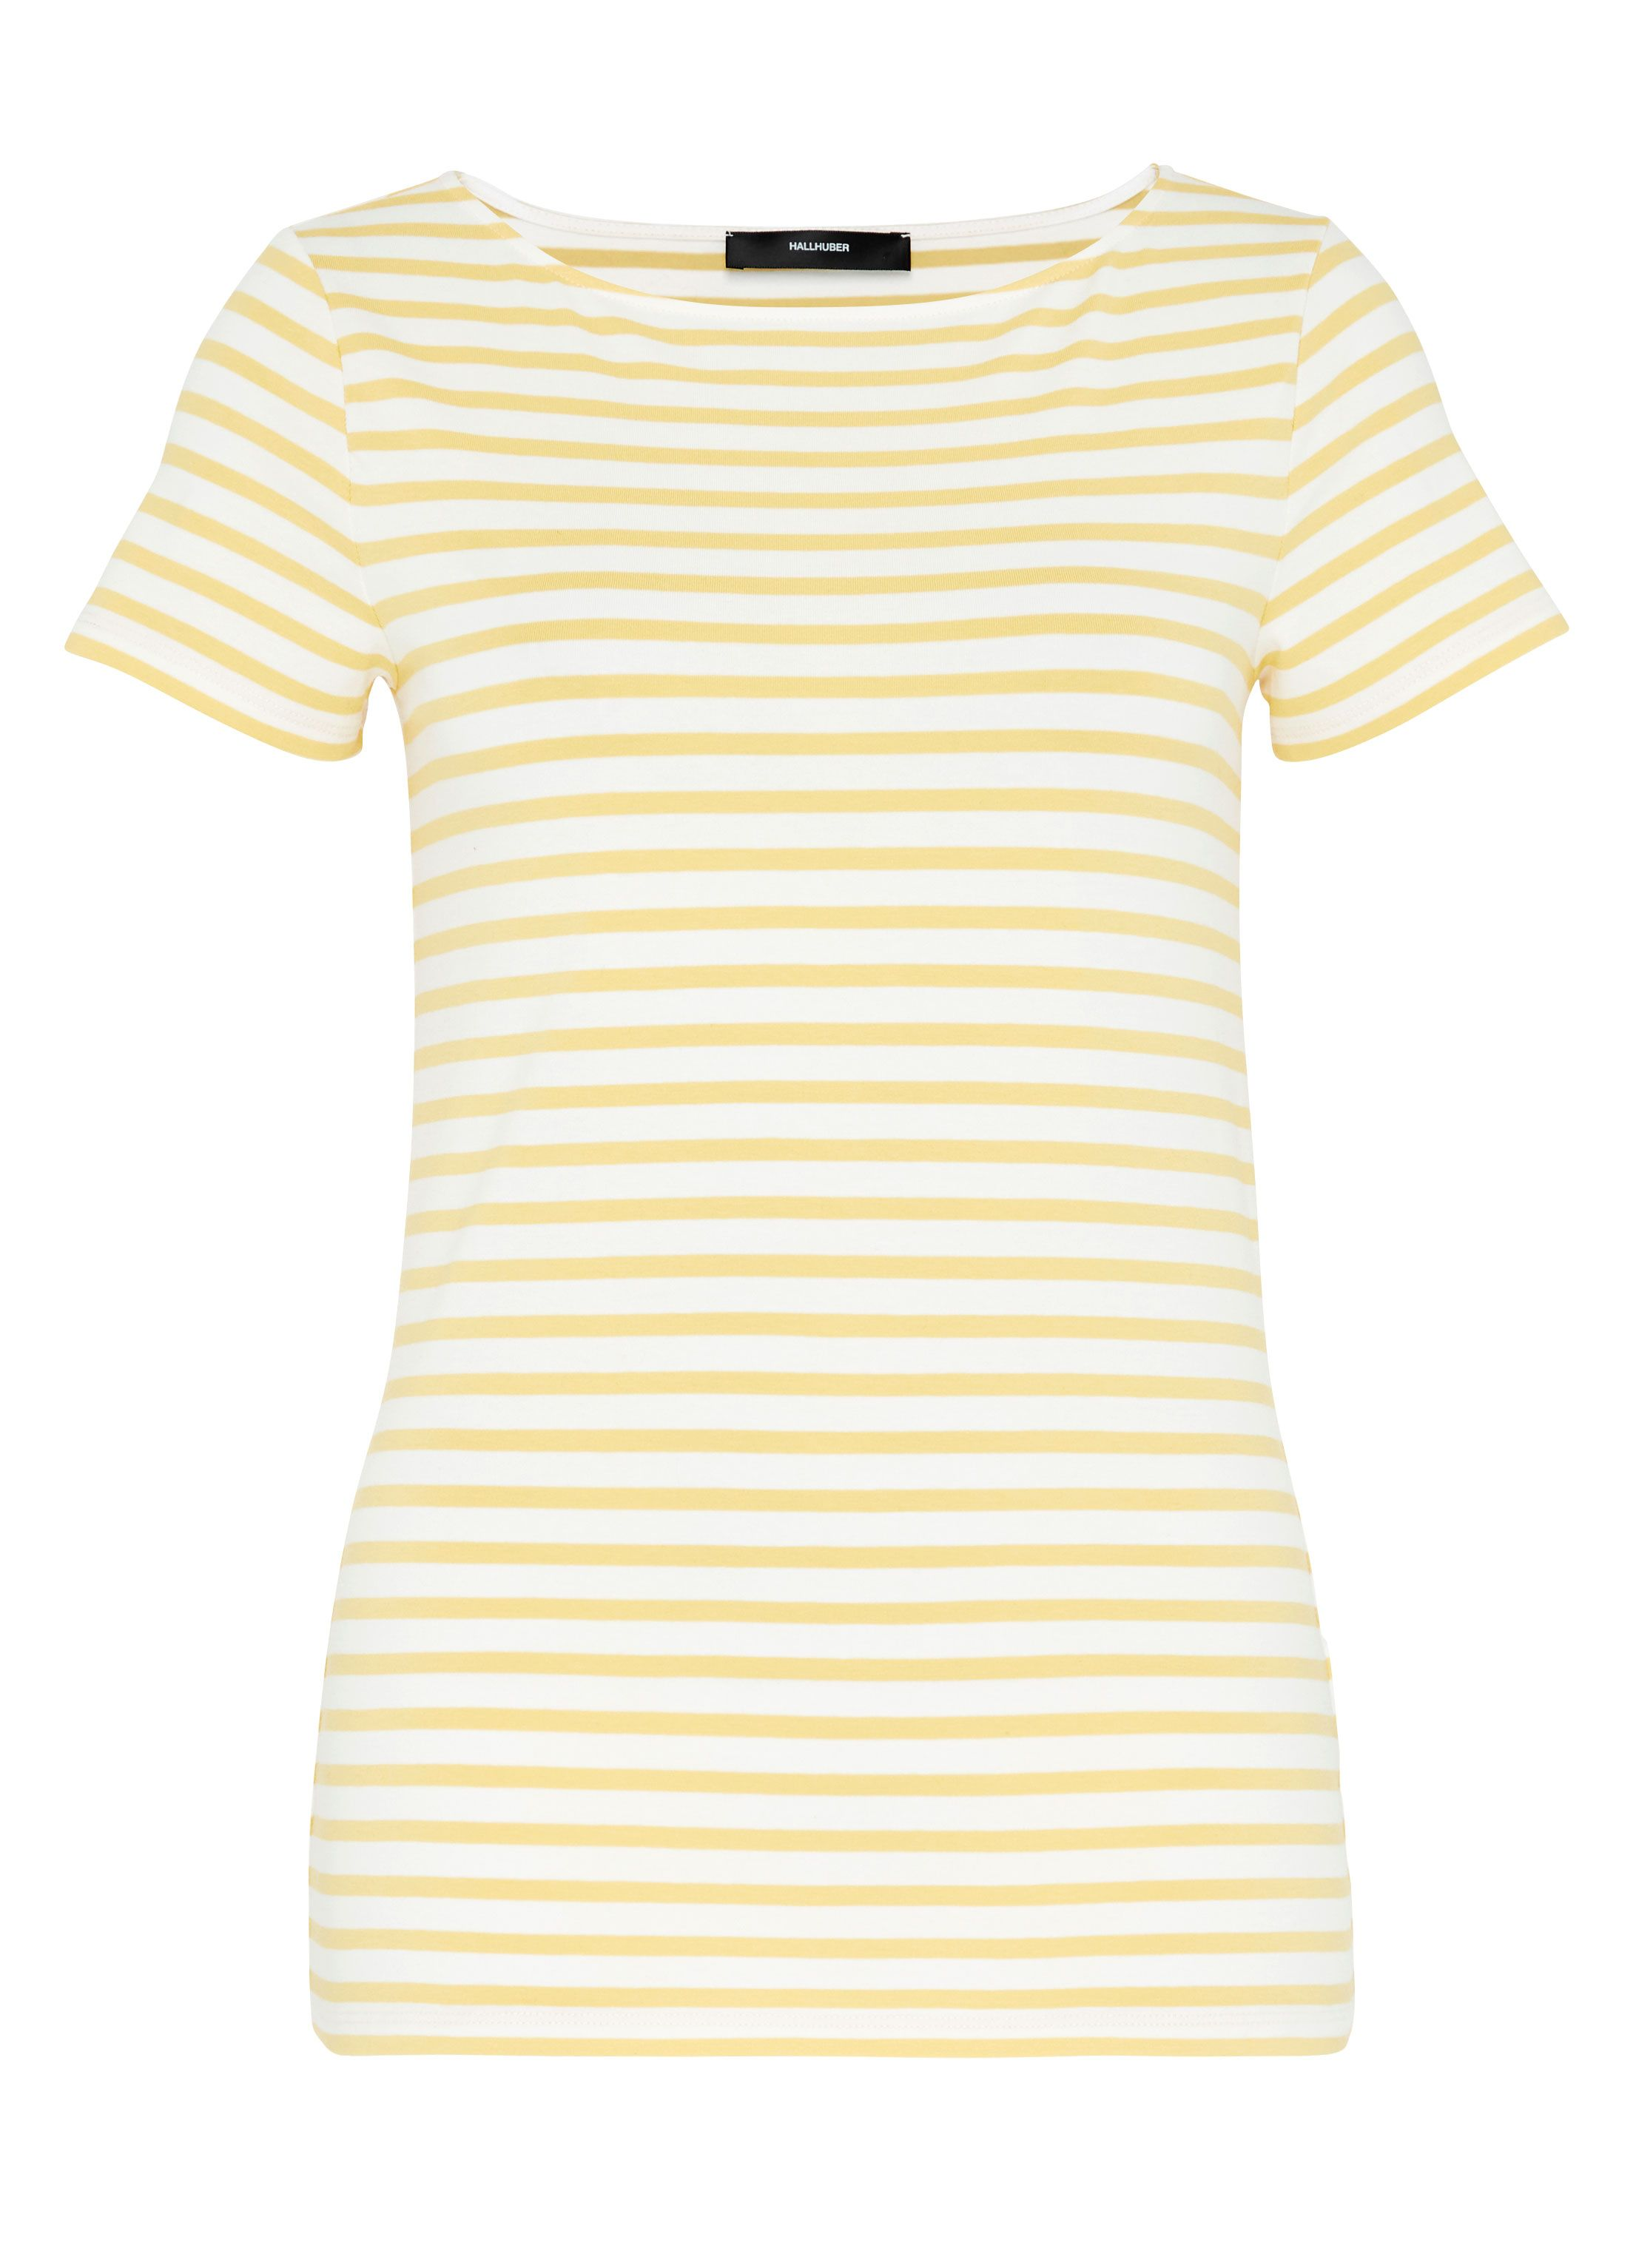 Hallhuber Basic Stripe Top, Yellow